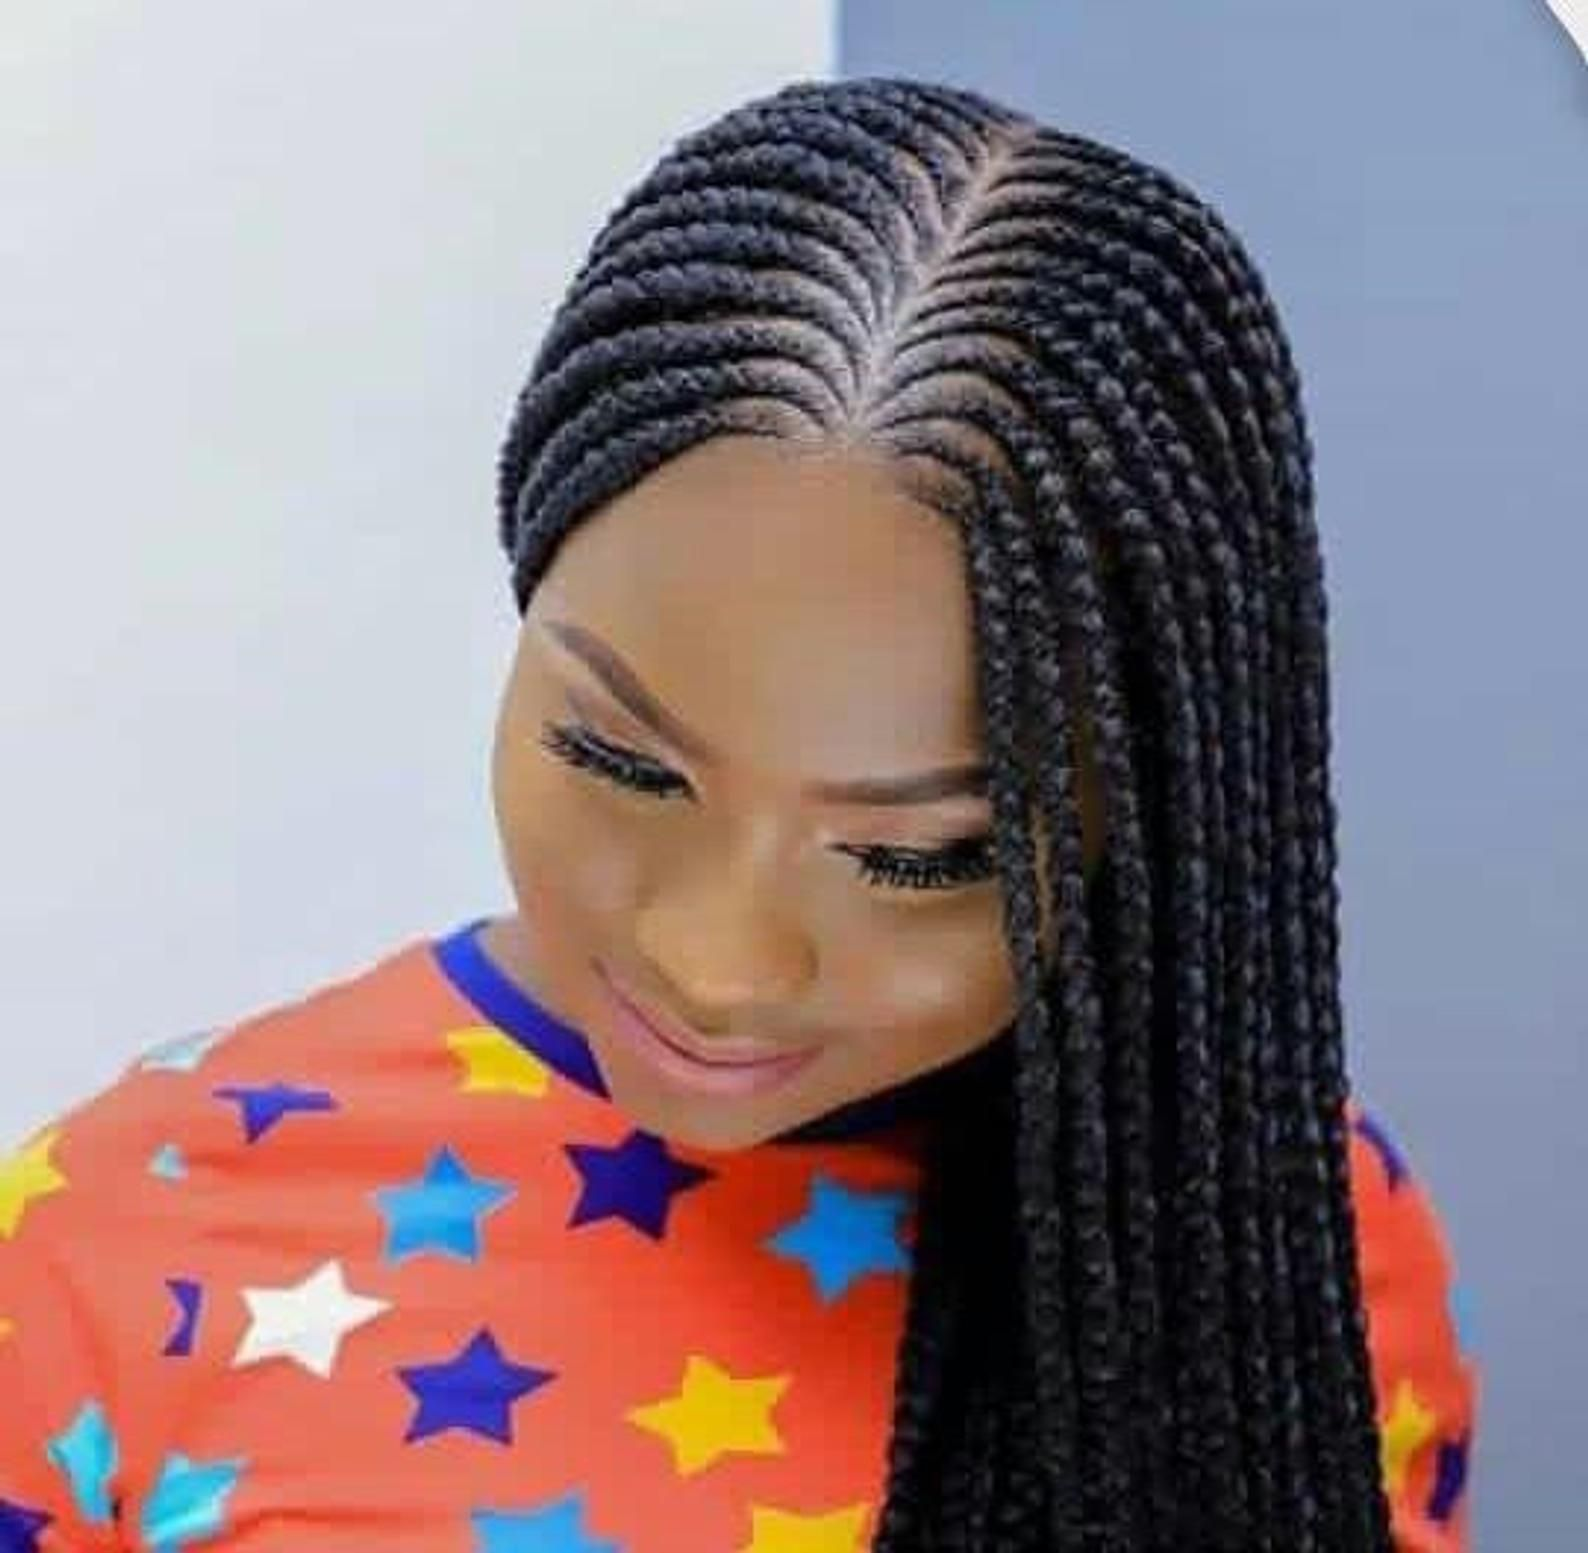 Nigerian African Braids Ready To Wear Wigs Ghana Weave Long Hair Wig Braids Centre Parted African Hair Braiding Styles Hair Styles African Braids Hairstyles